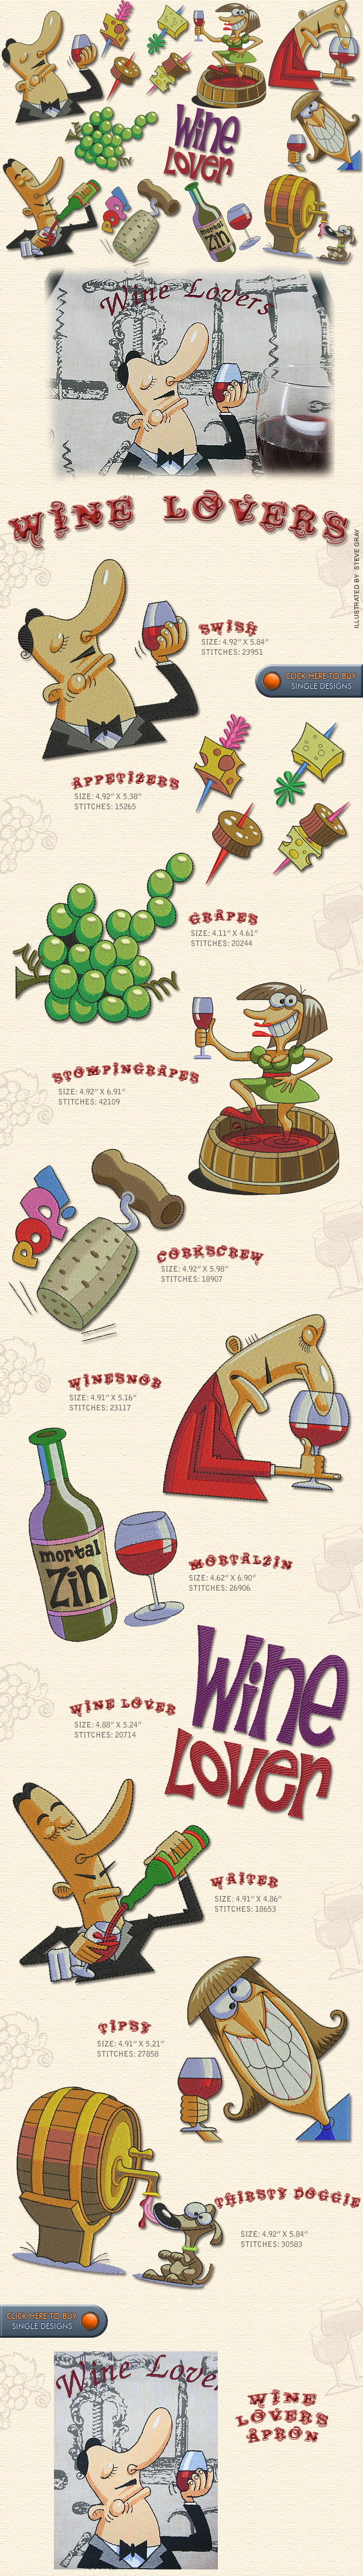 WINE LOVERS, Embroidery Designs Free Embroidery Design Patterns ...